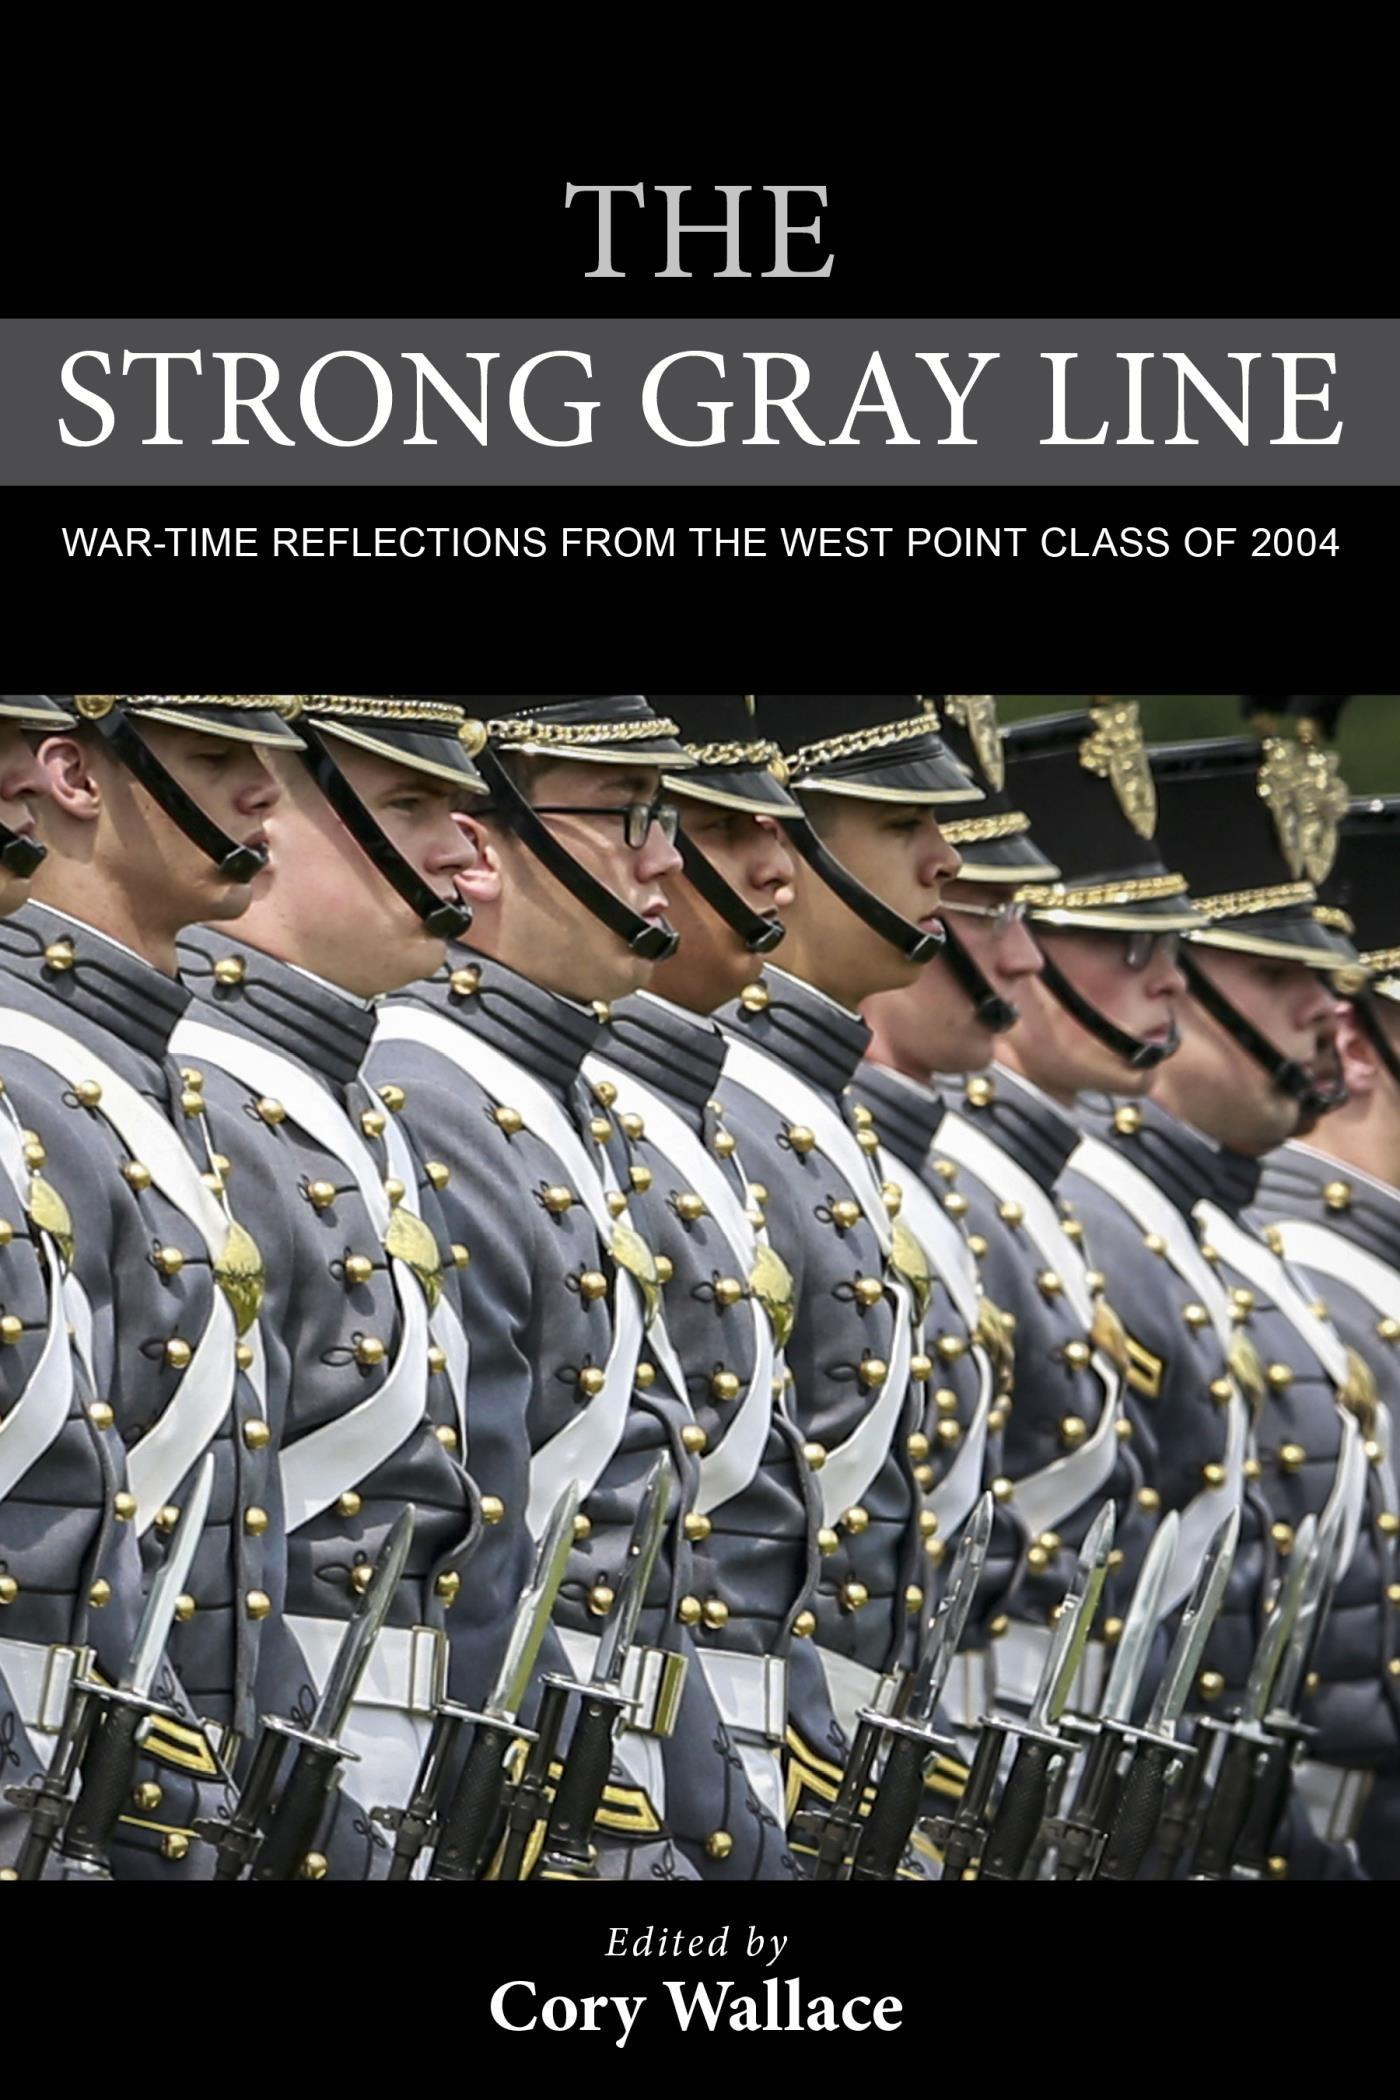 OFF The Strong Gray Line